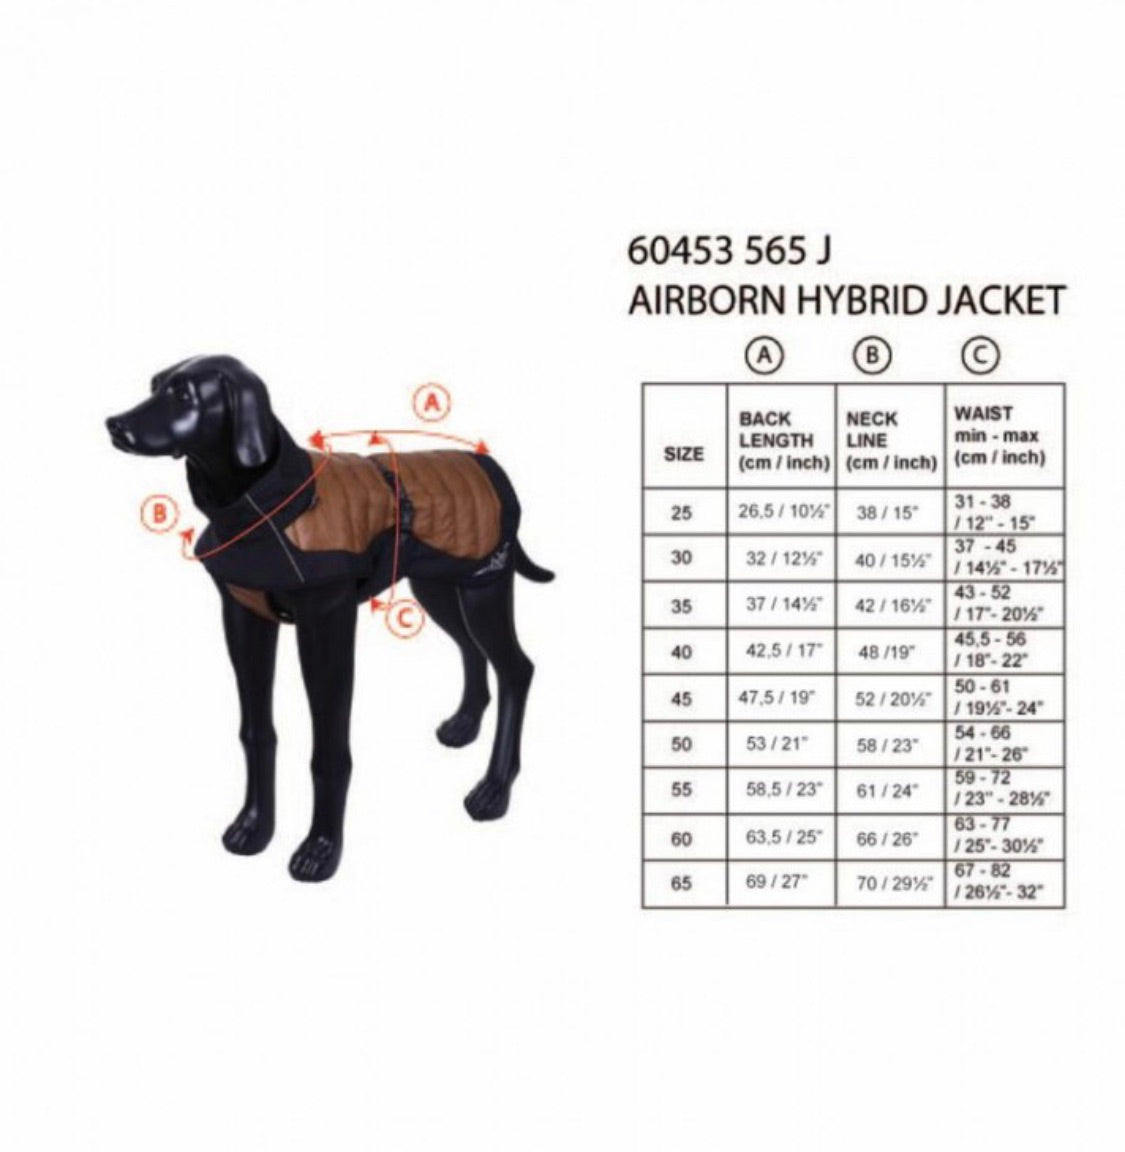 Rukka Coat - Airborn Hybrid Jacket, Pet Clothing, Rukka Pets - Averys Motorcycles